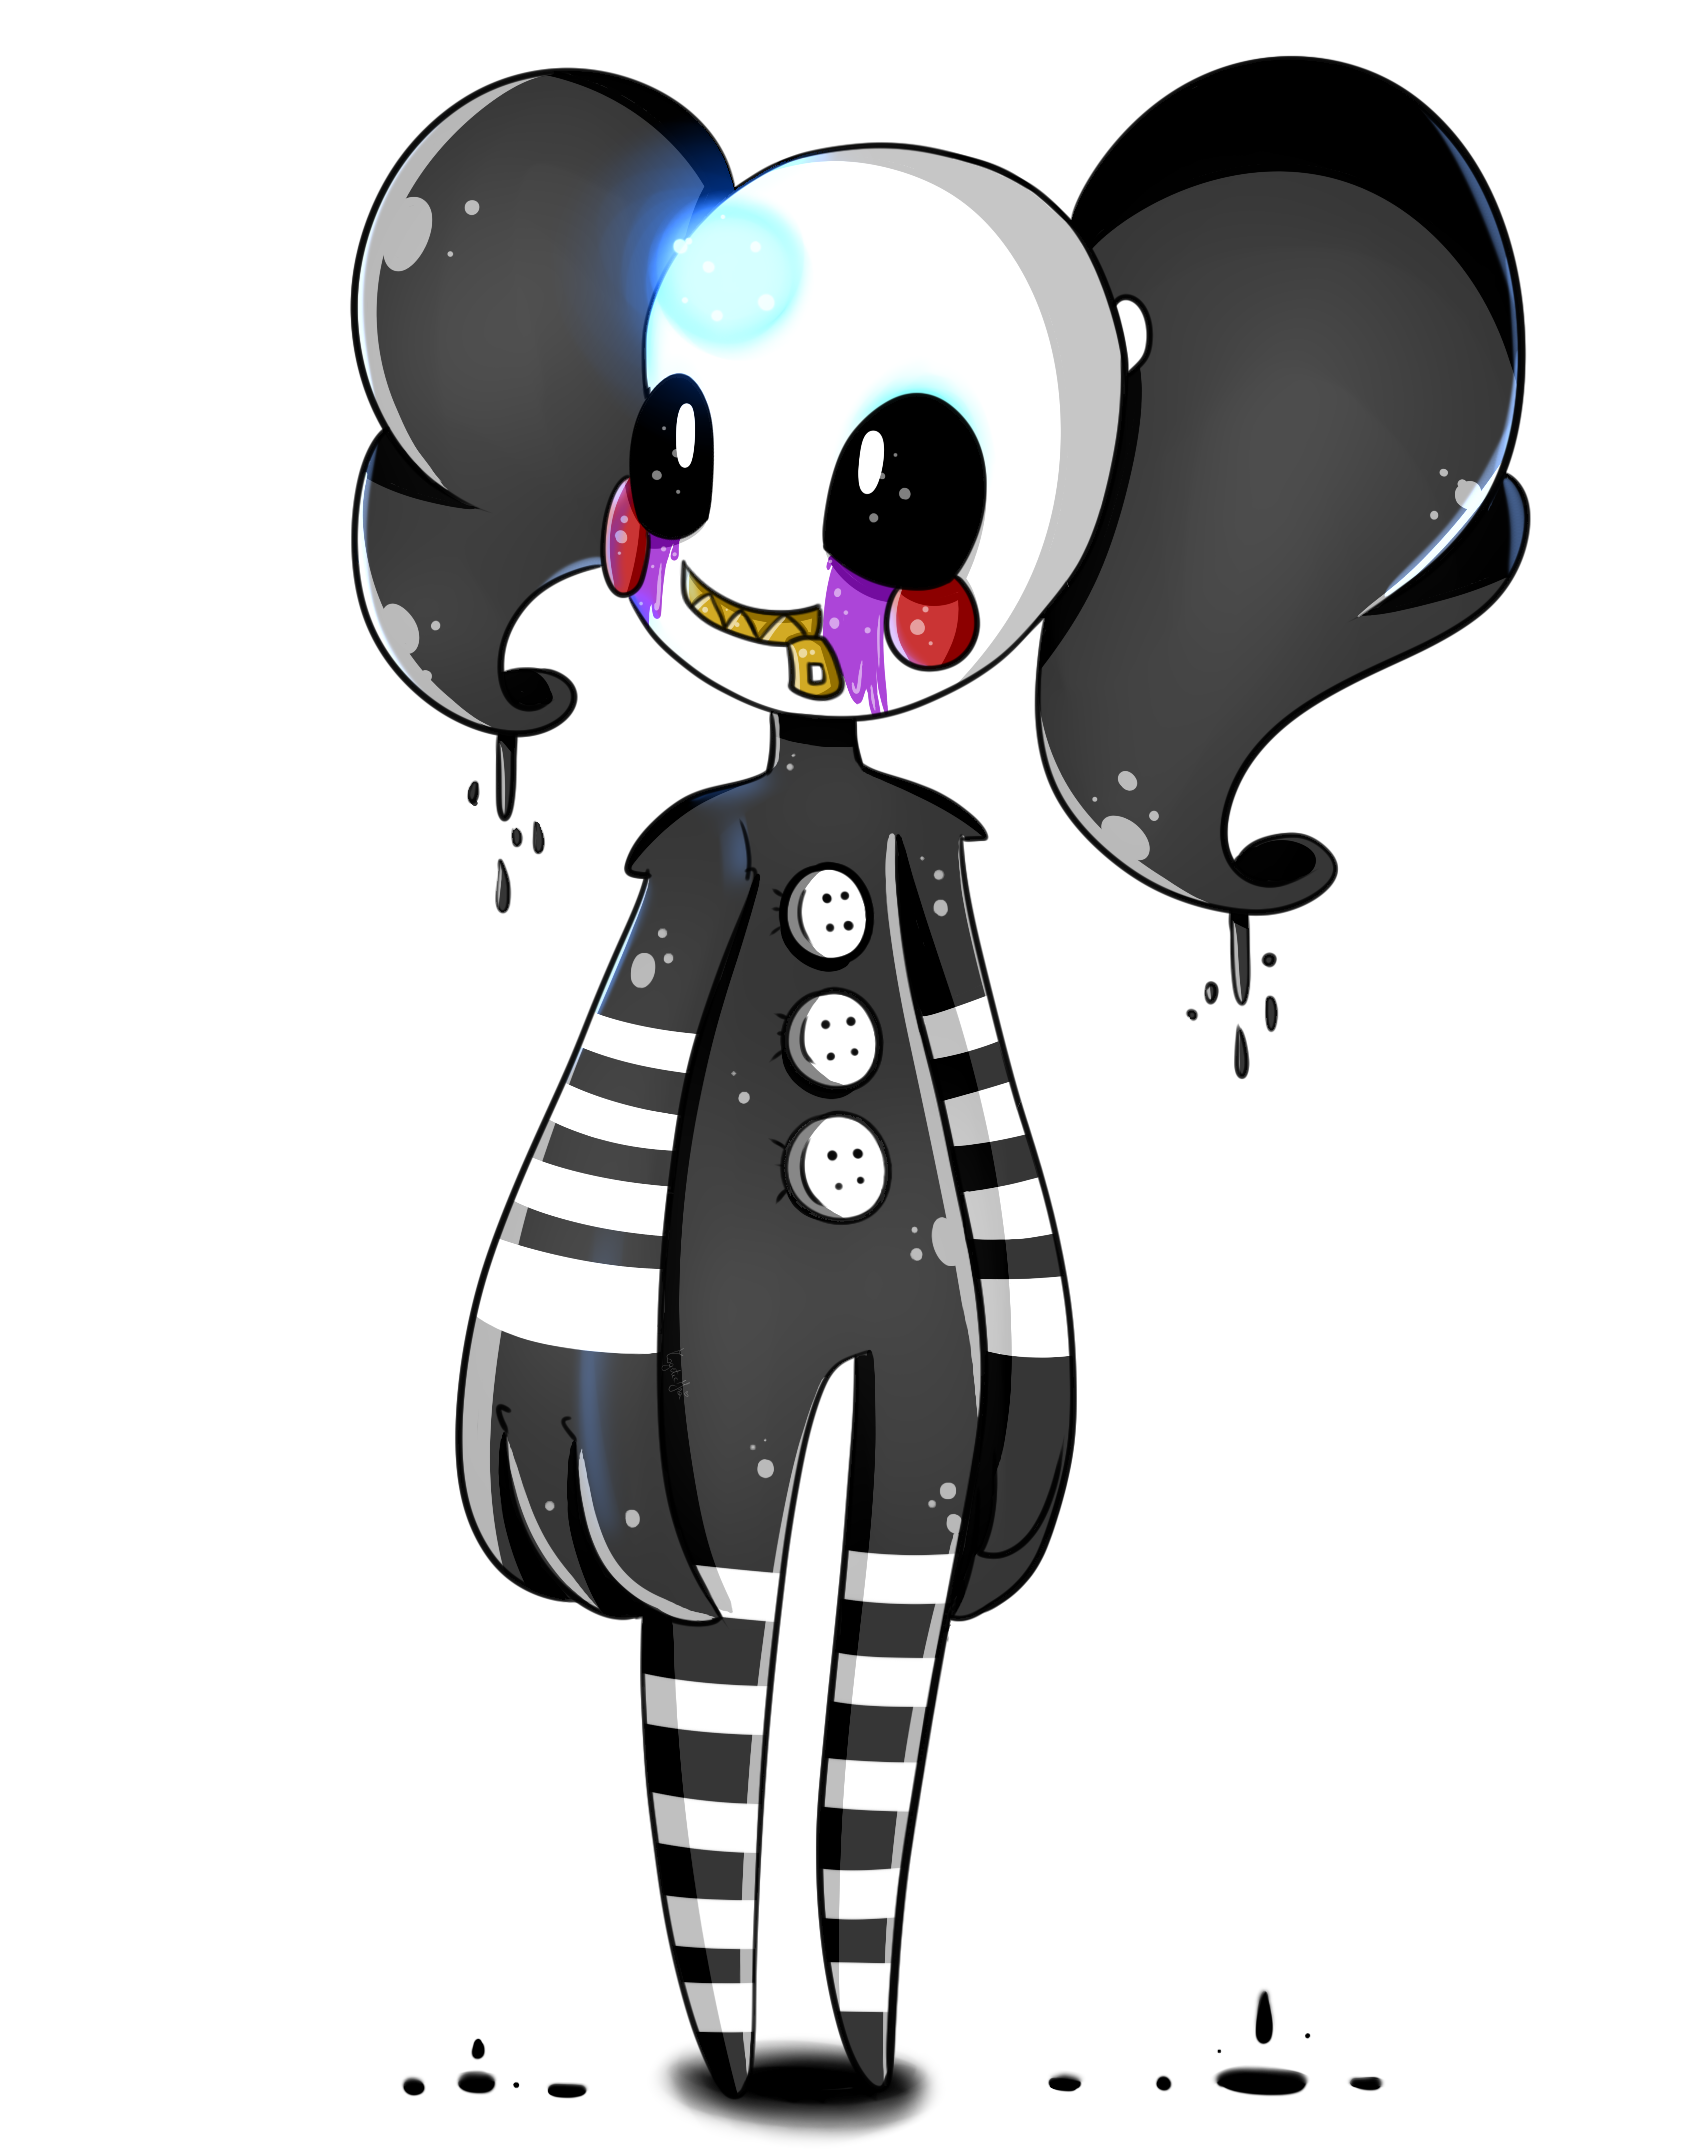 Little Cute Puppet By Togeticisa On Deviantart